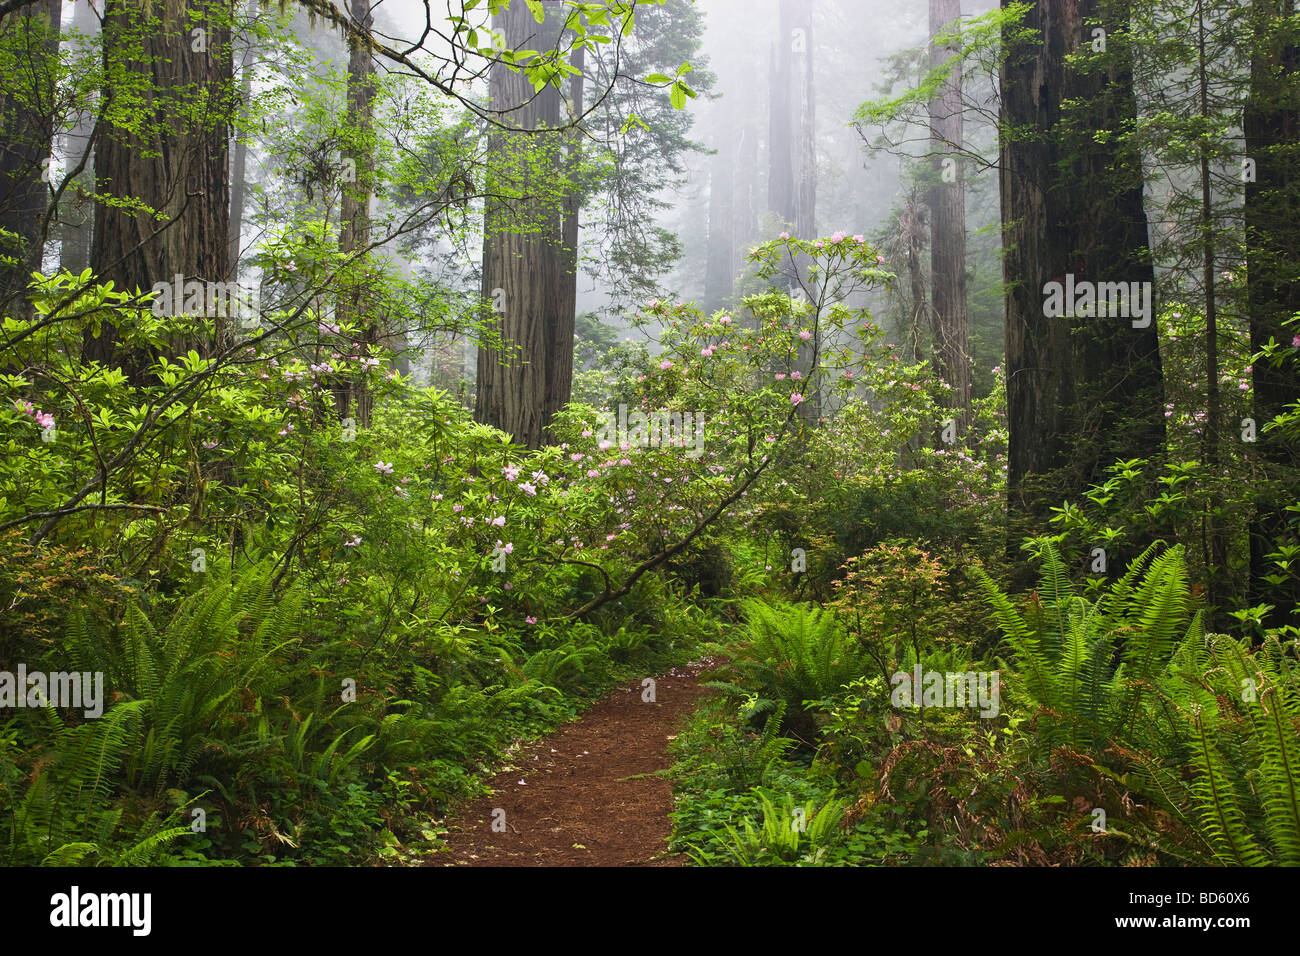 Rhododendron flowering, Redwood Forest. - Stock Image